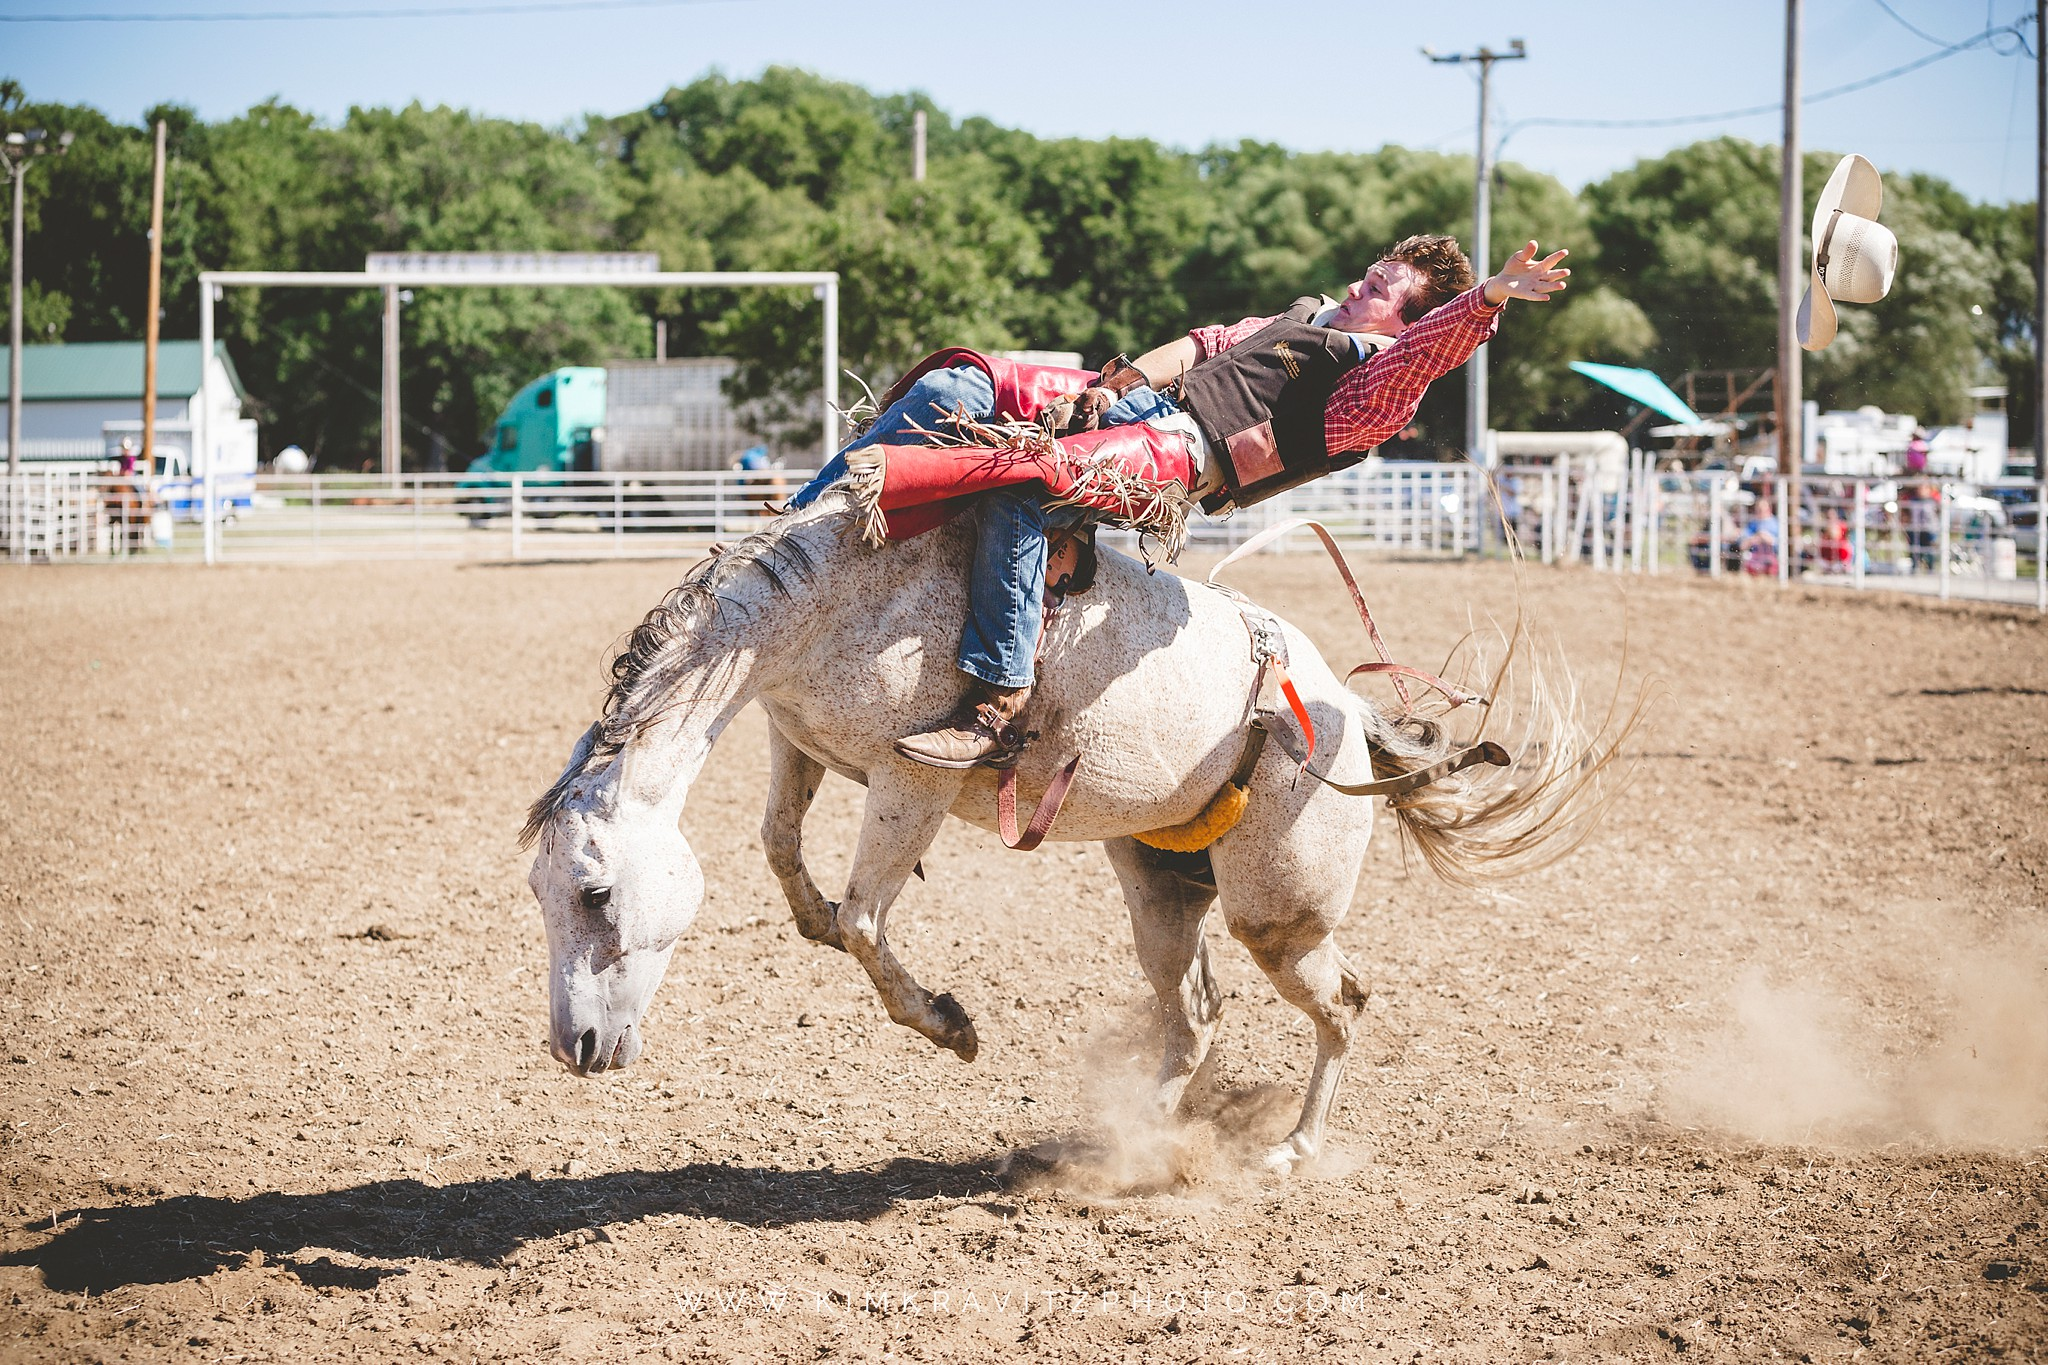 crawford county kansas fair rodeo kim kravitz